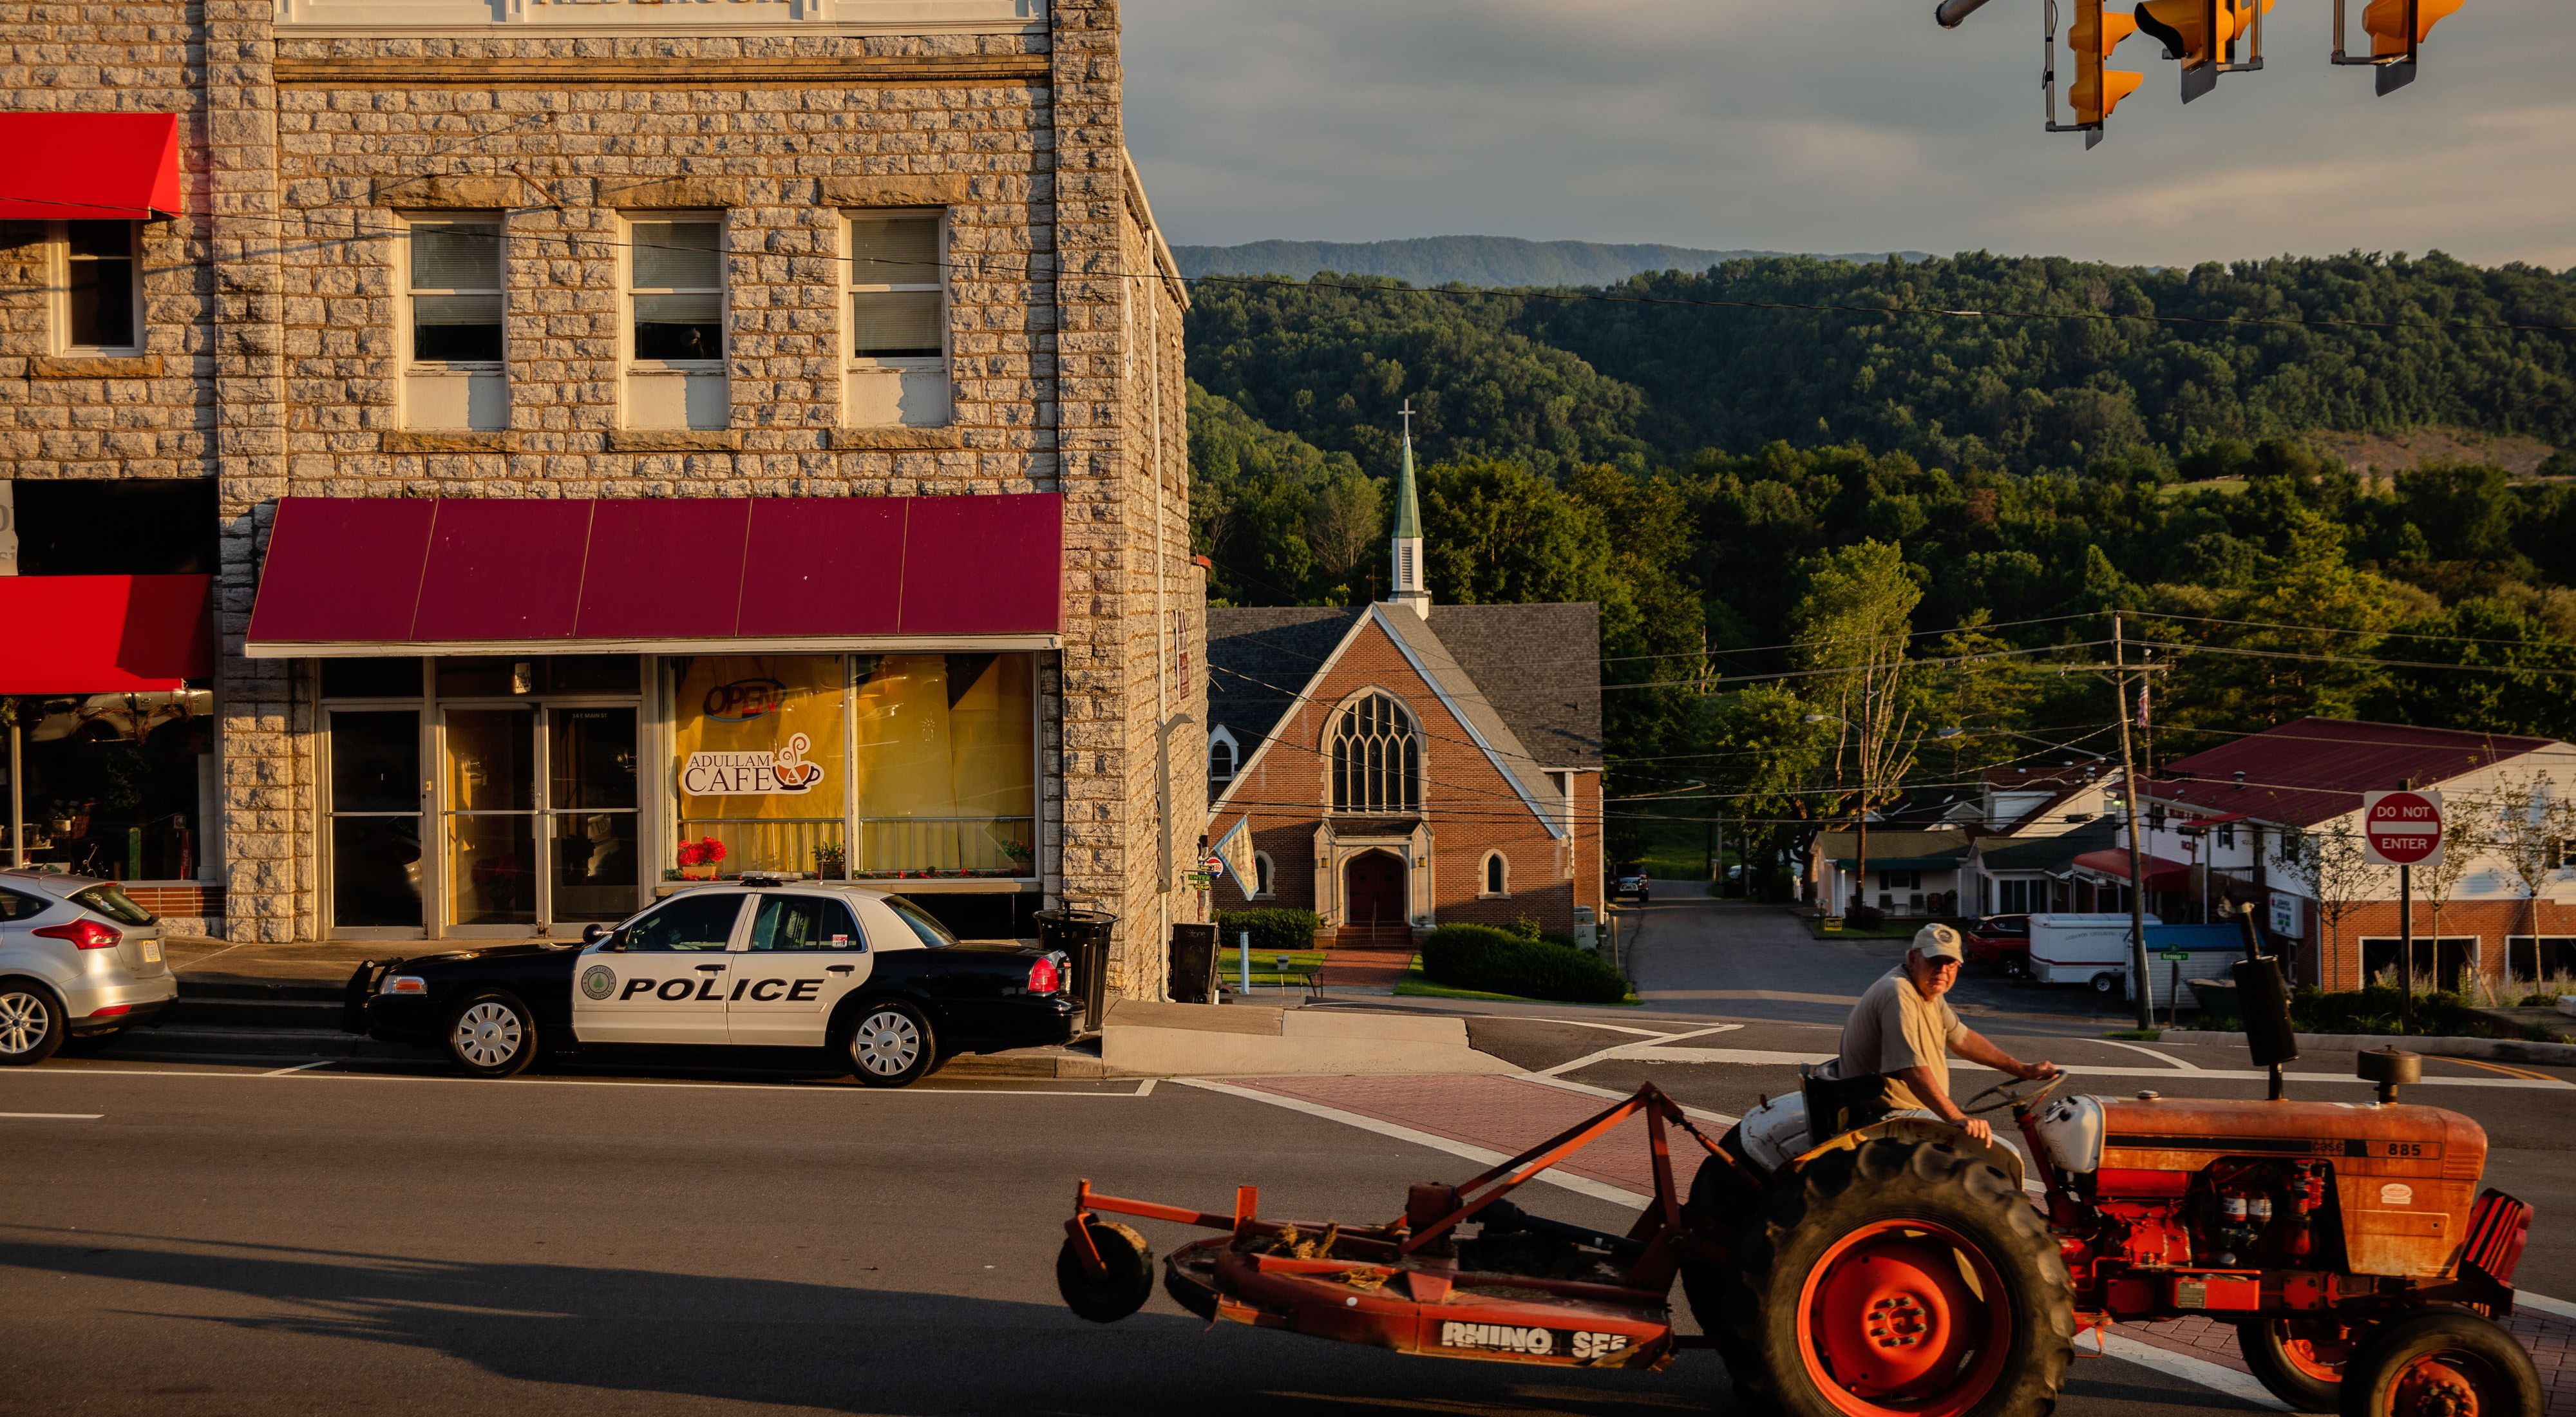 Street scene in St. Paul, VA. A red tractor drives past stone clad storefront. A police car is parked on the street. A church and other buildings are visible with a tall mountain in the background.